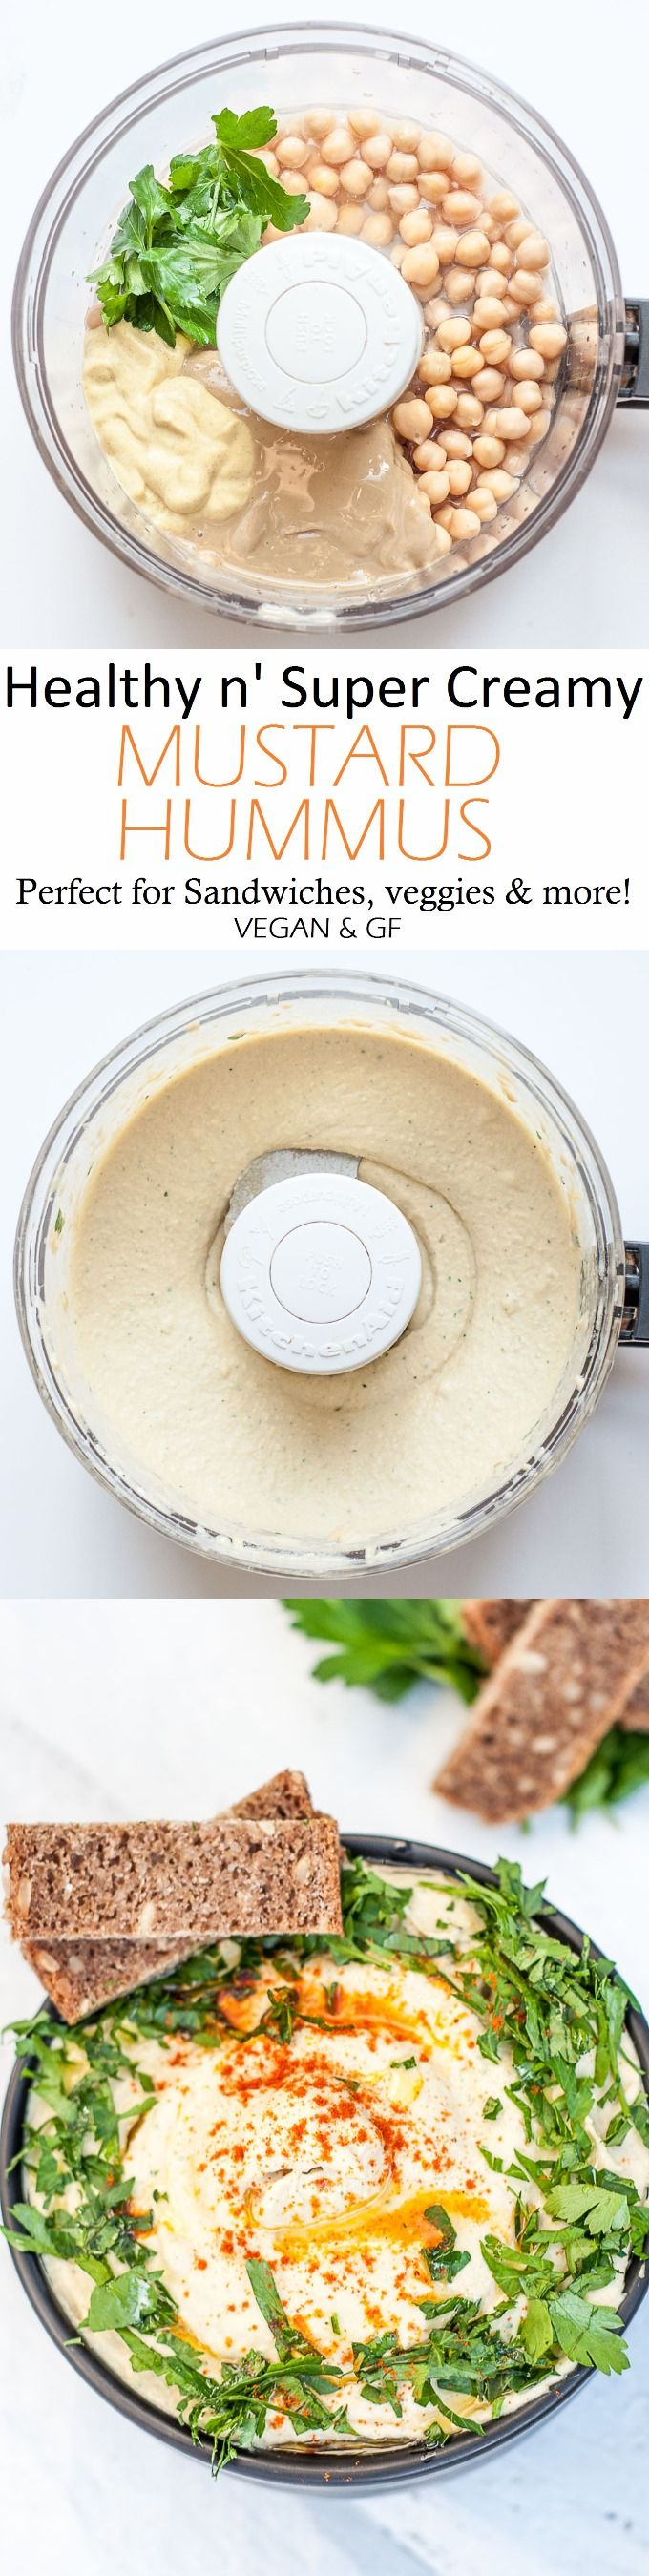 Healthy n' Extra Creamy Mustard Hummus for sandwiches, steamed veggies, casseroles, and more! + a guide on how to make creamy hummus!! | VeganFamilyRecipes.com | #appetizer #vegan #gf